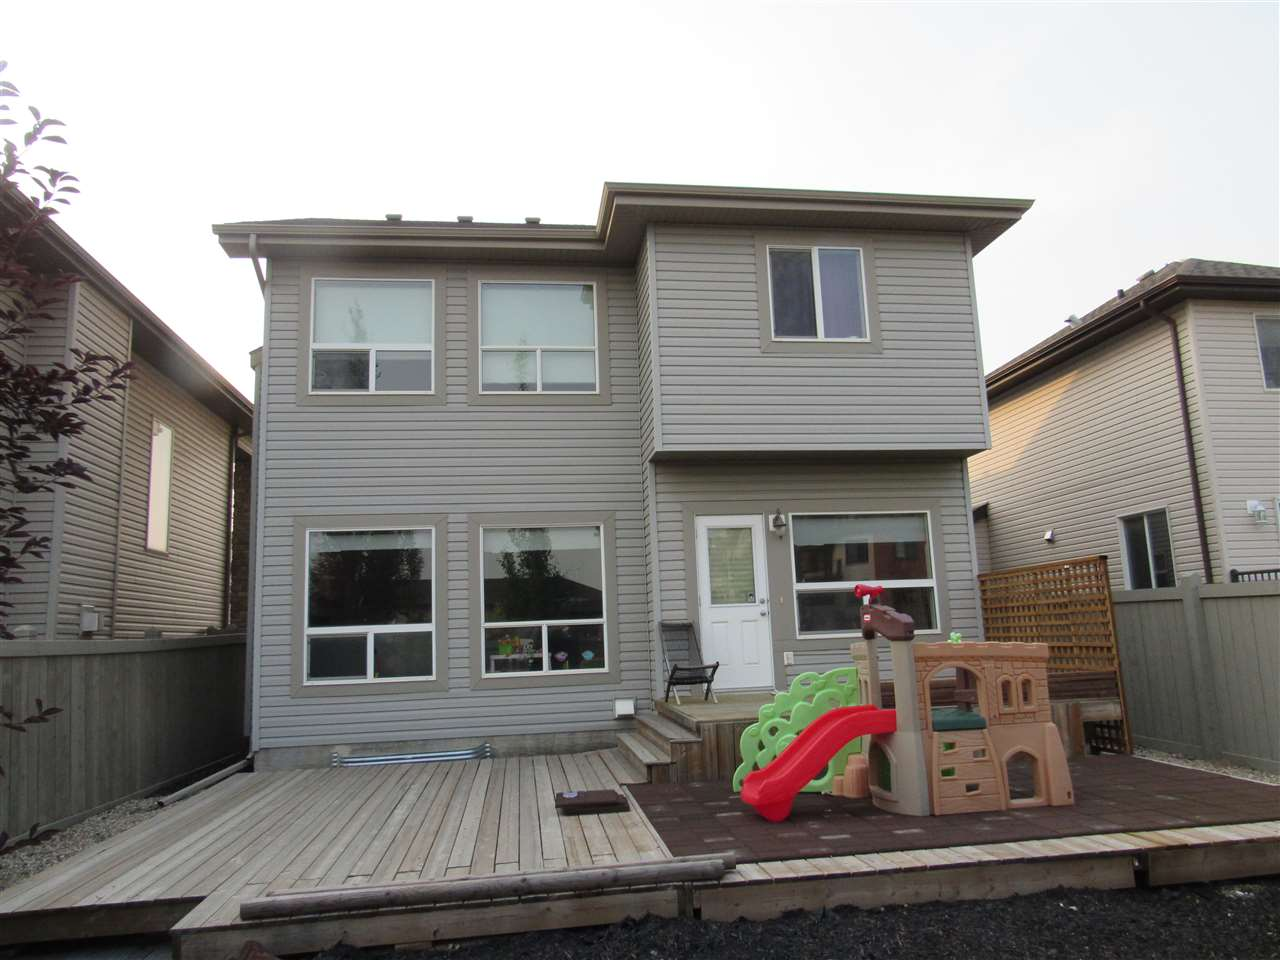 Photo 28: 1020 CONNELLY Way in Edmonton: Zone 55 House for sale : MLS® # E4075955